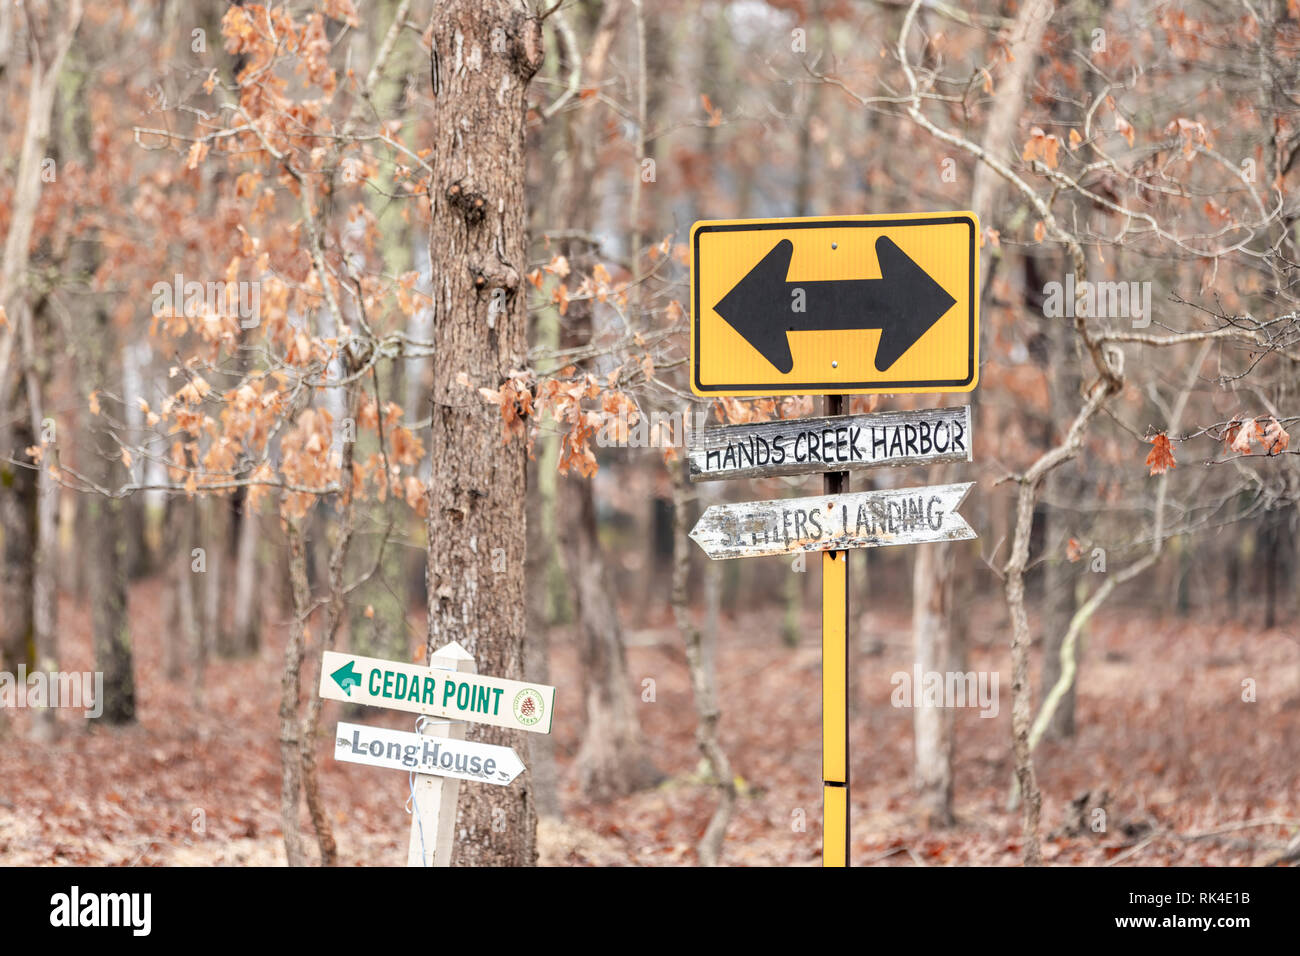 Various signs point to different locations in East Hampton, NY - Stock Image